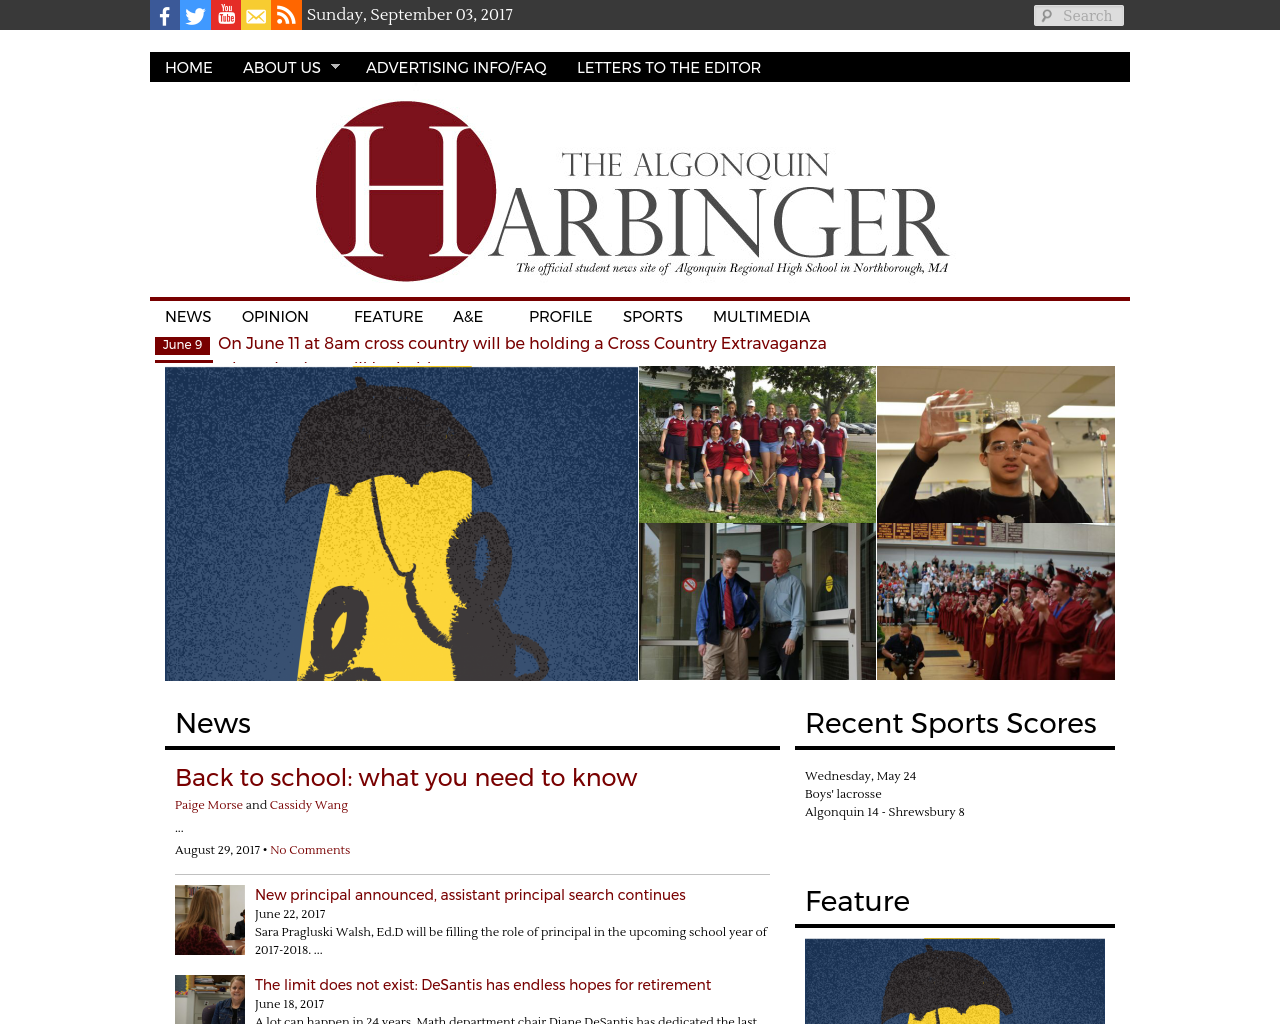 THE-ALGONQUIN-HARBINGER-Advertising-Reviews-Pricing